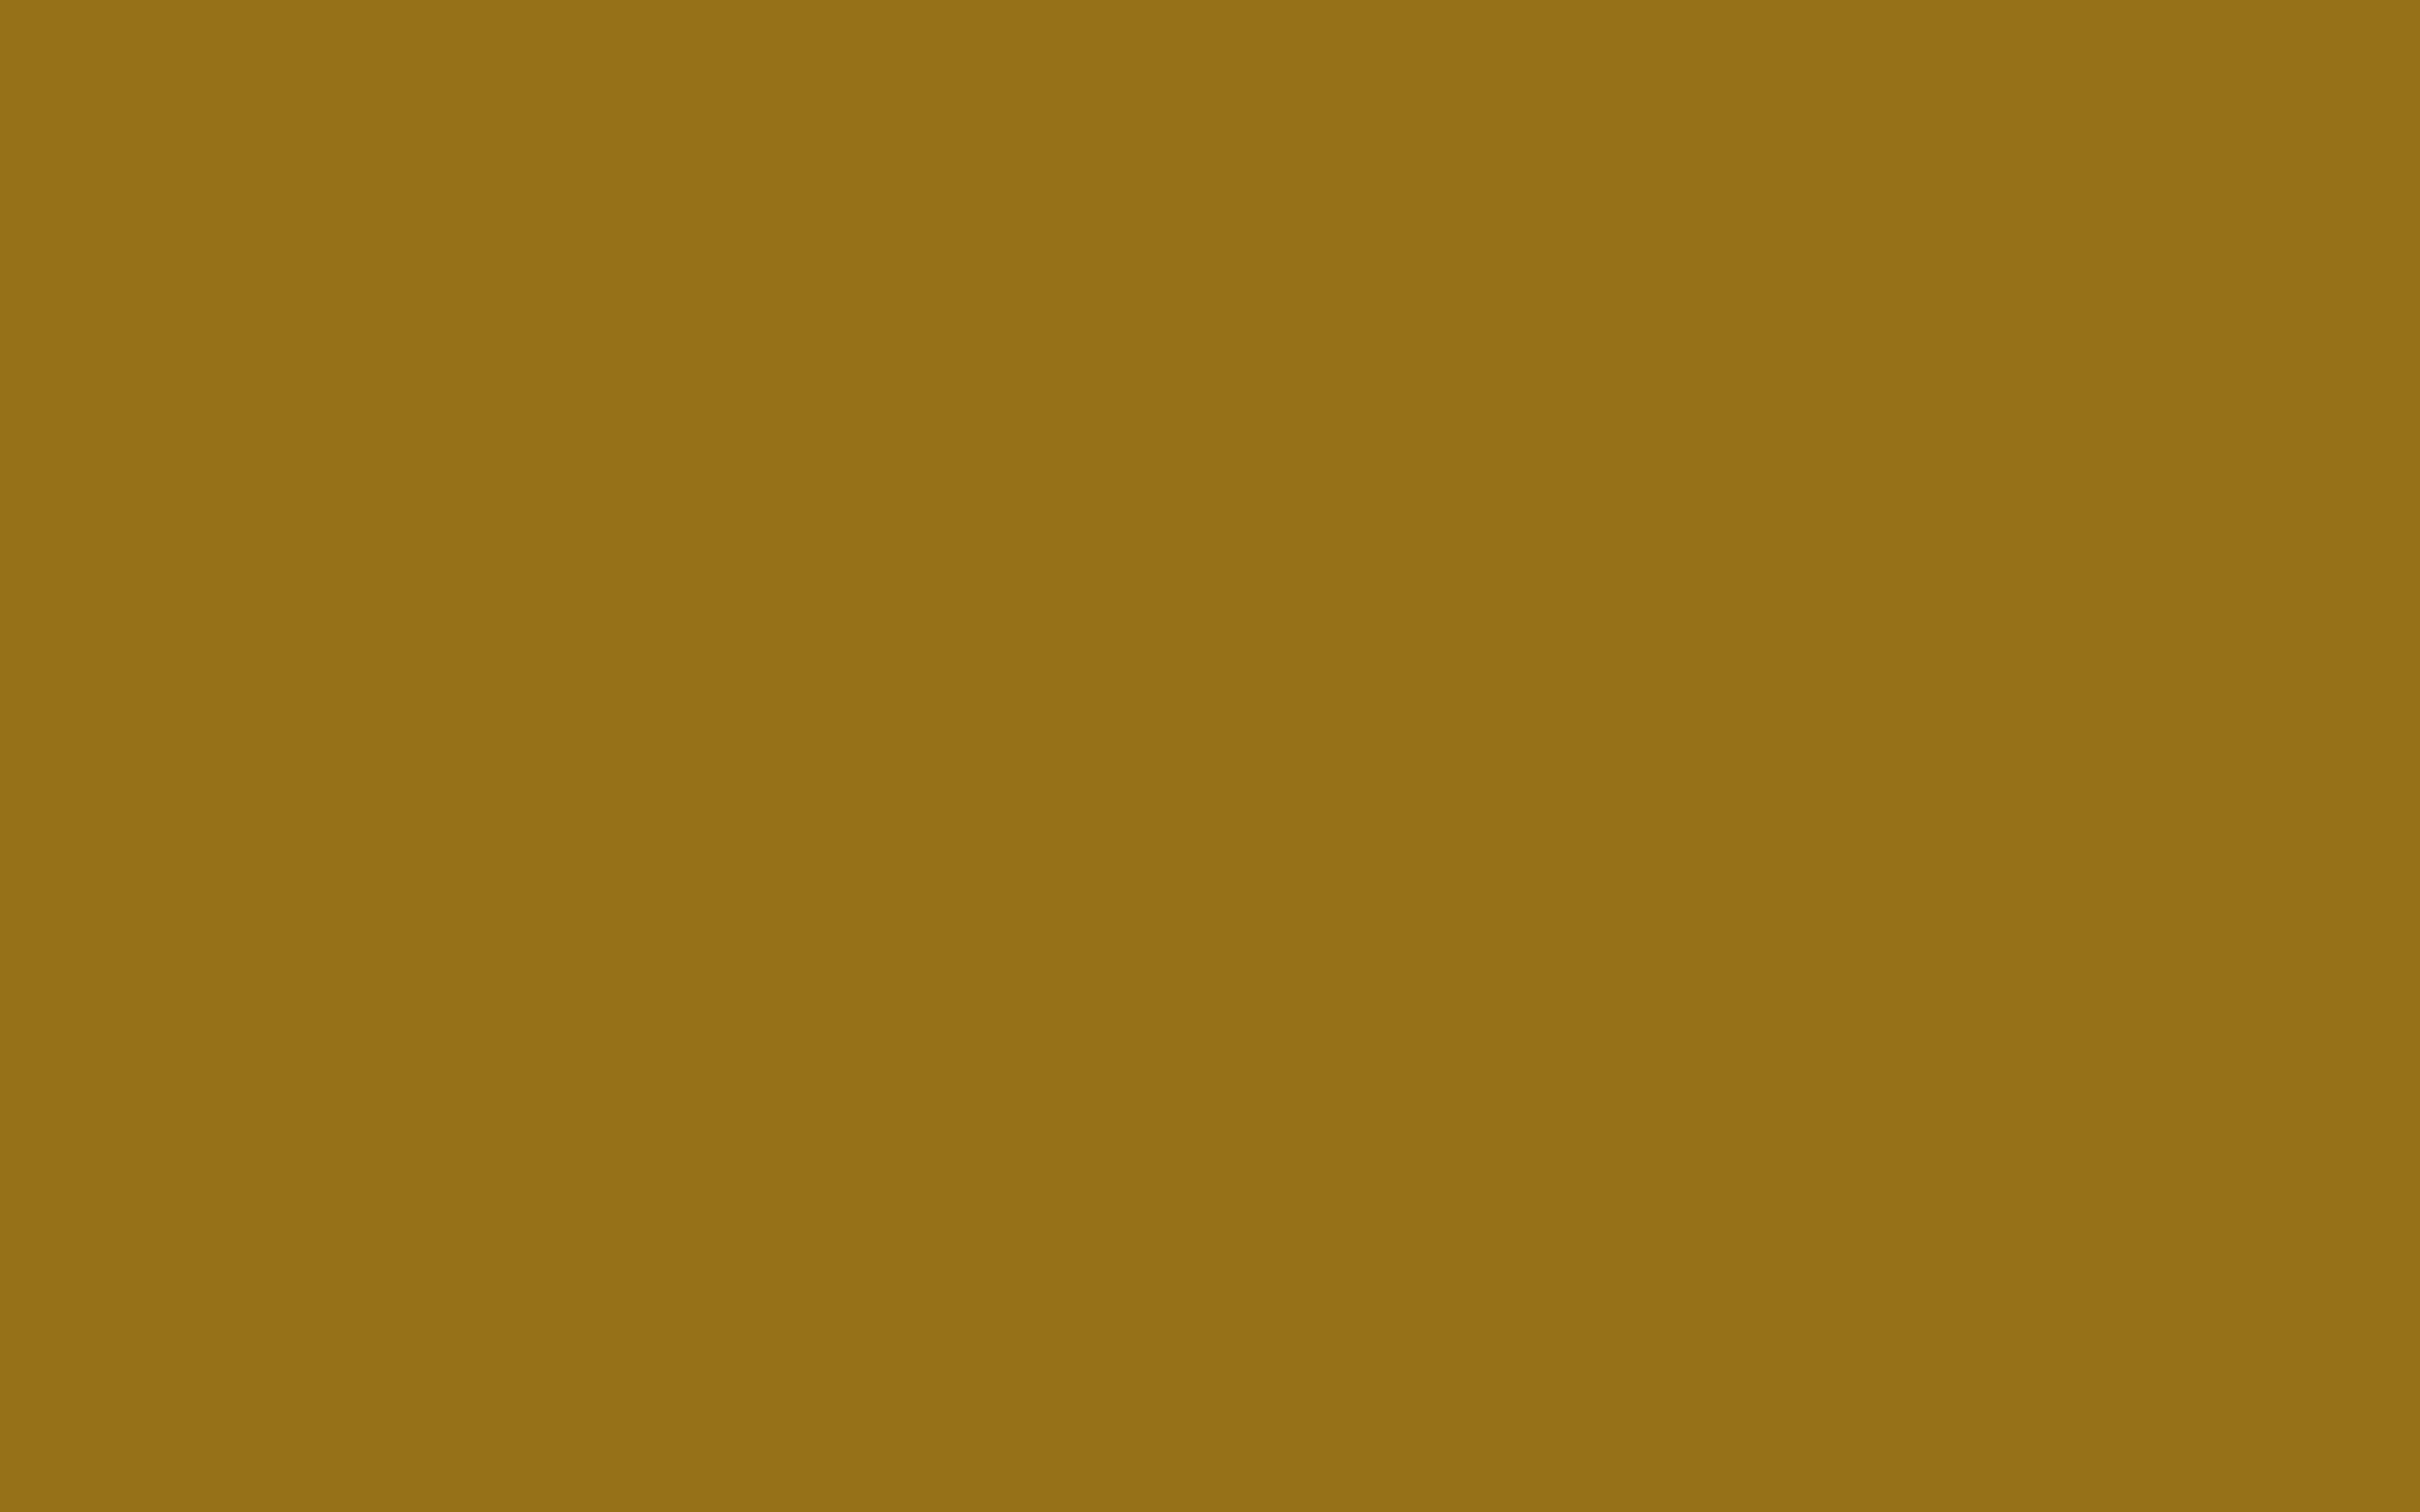 2880x1800 Drab Solid Color Background